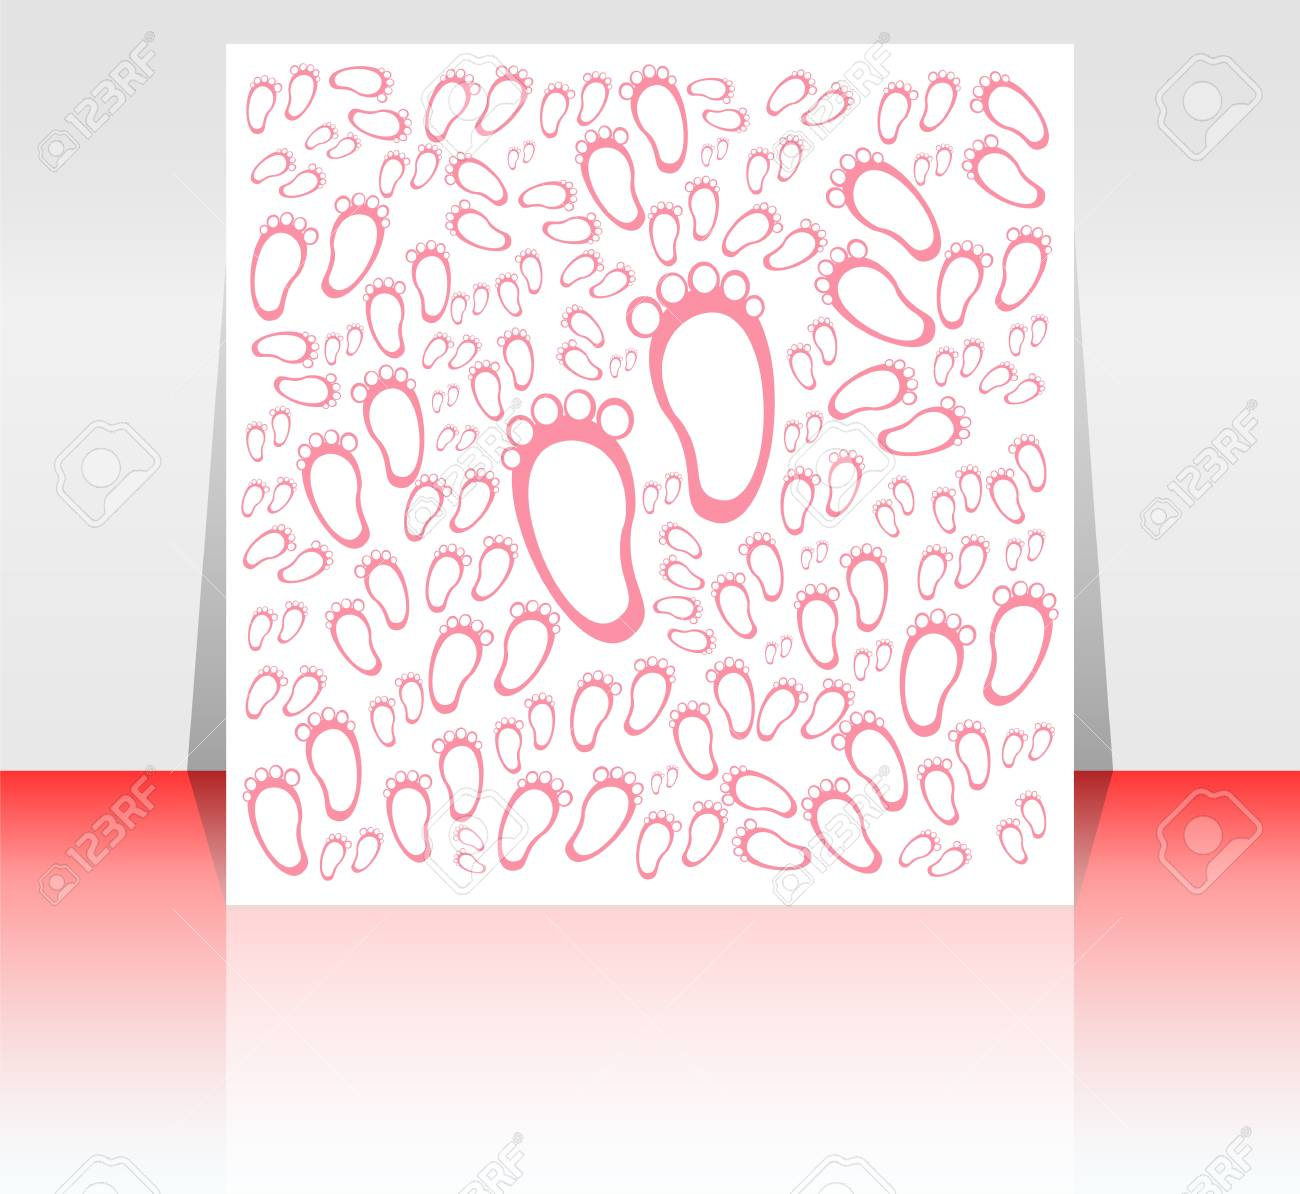 Bright baby girl arrival card, shower invitation Stock Photo - 18260068